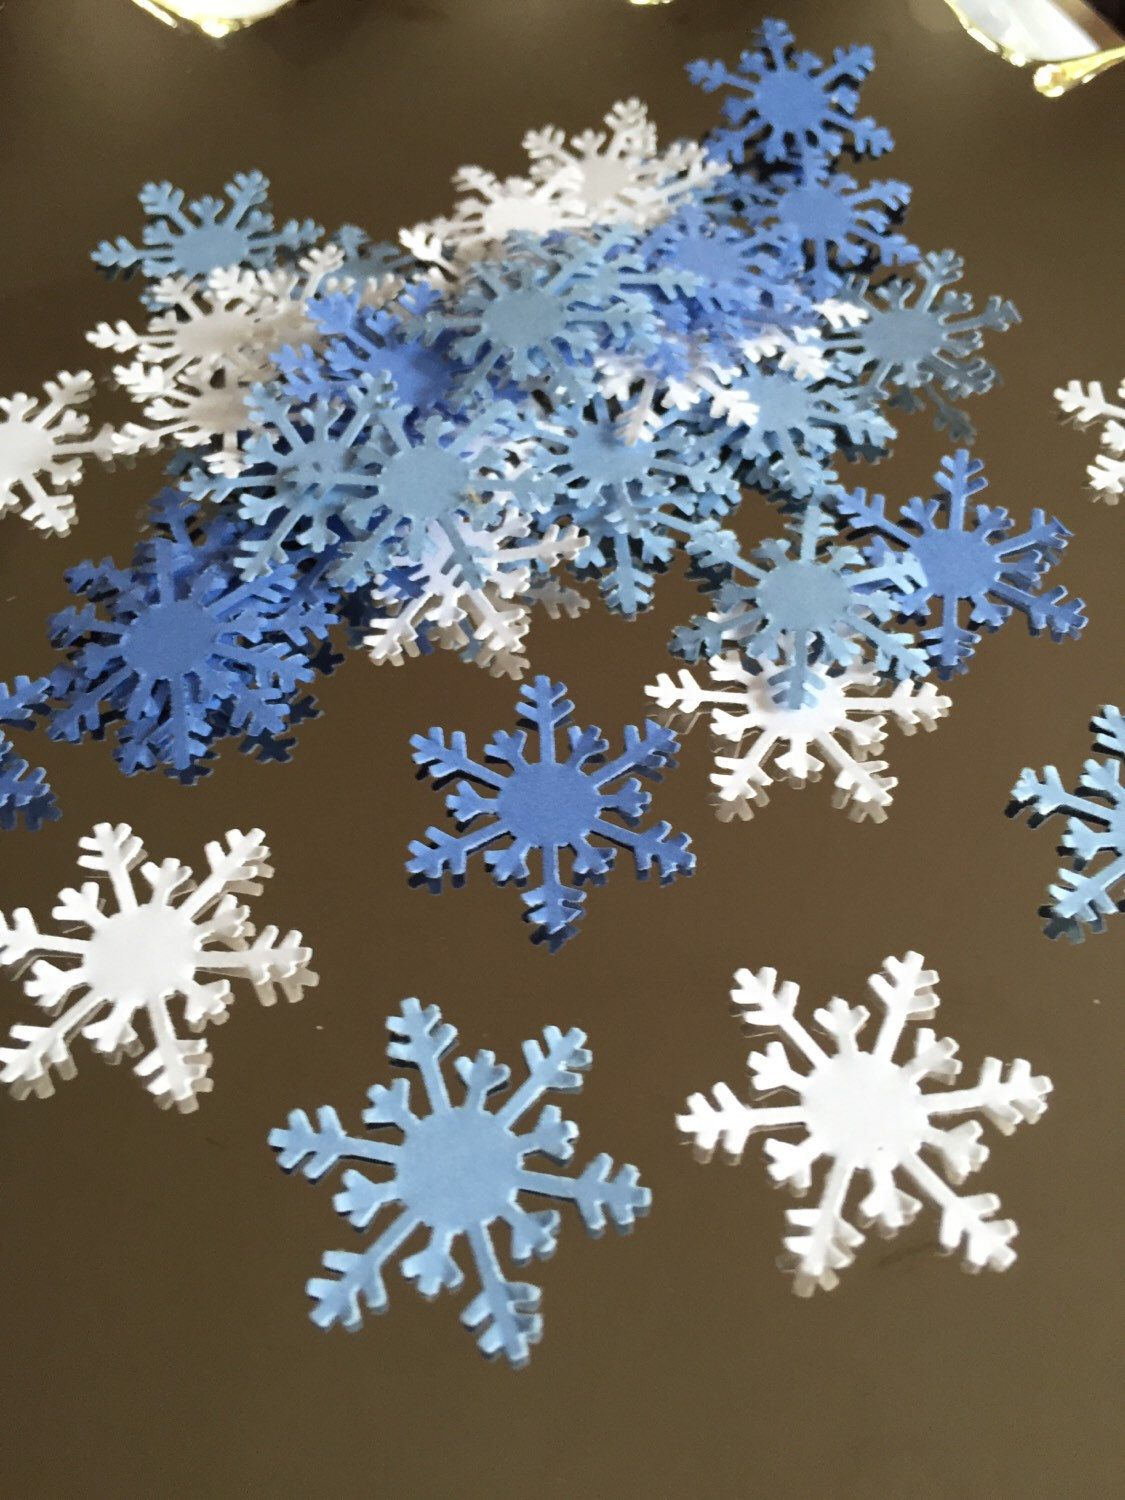 Snowflake confetti 100 count, winter ONEderland, frozen birthday, winter party, baby its cold outside, baby shower, first birthday by MaxandEmsPartyShoppe on Etsy https://www.etsy.com/listing/252385227/snowflake-confetti-100-count-winter